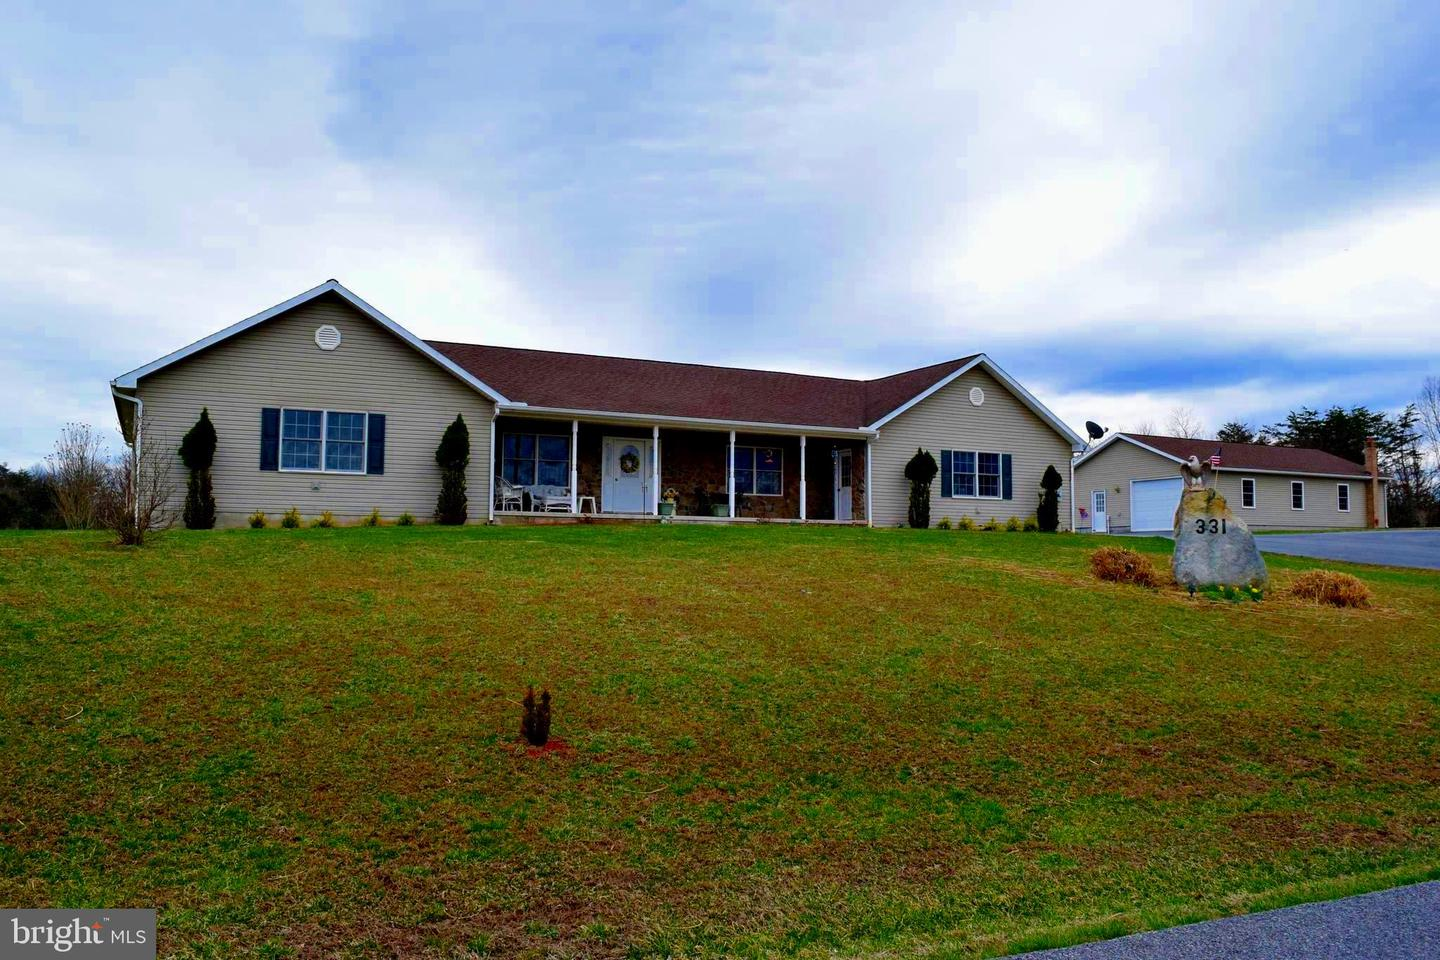 Single Family for Sale at 331 Truax Dr Berkeley Springs, West Virginia 25411 United States